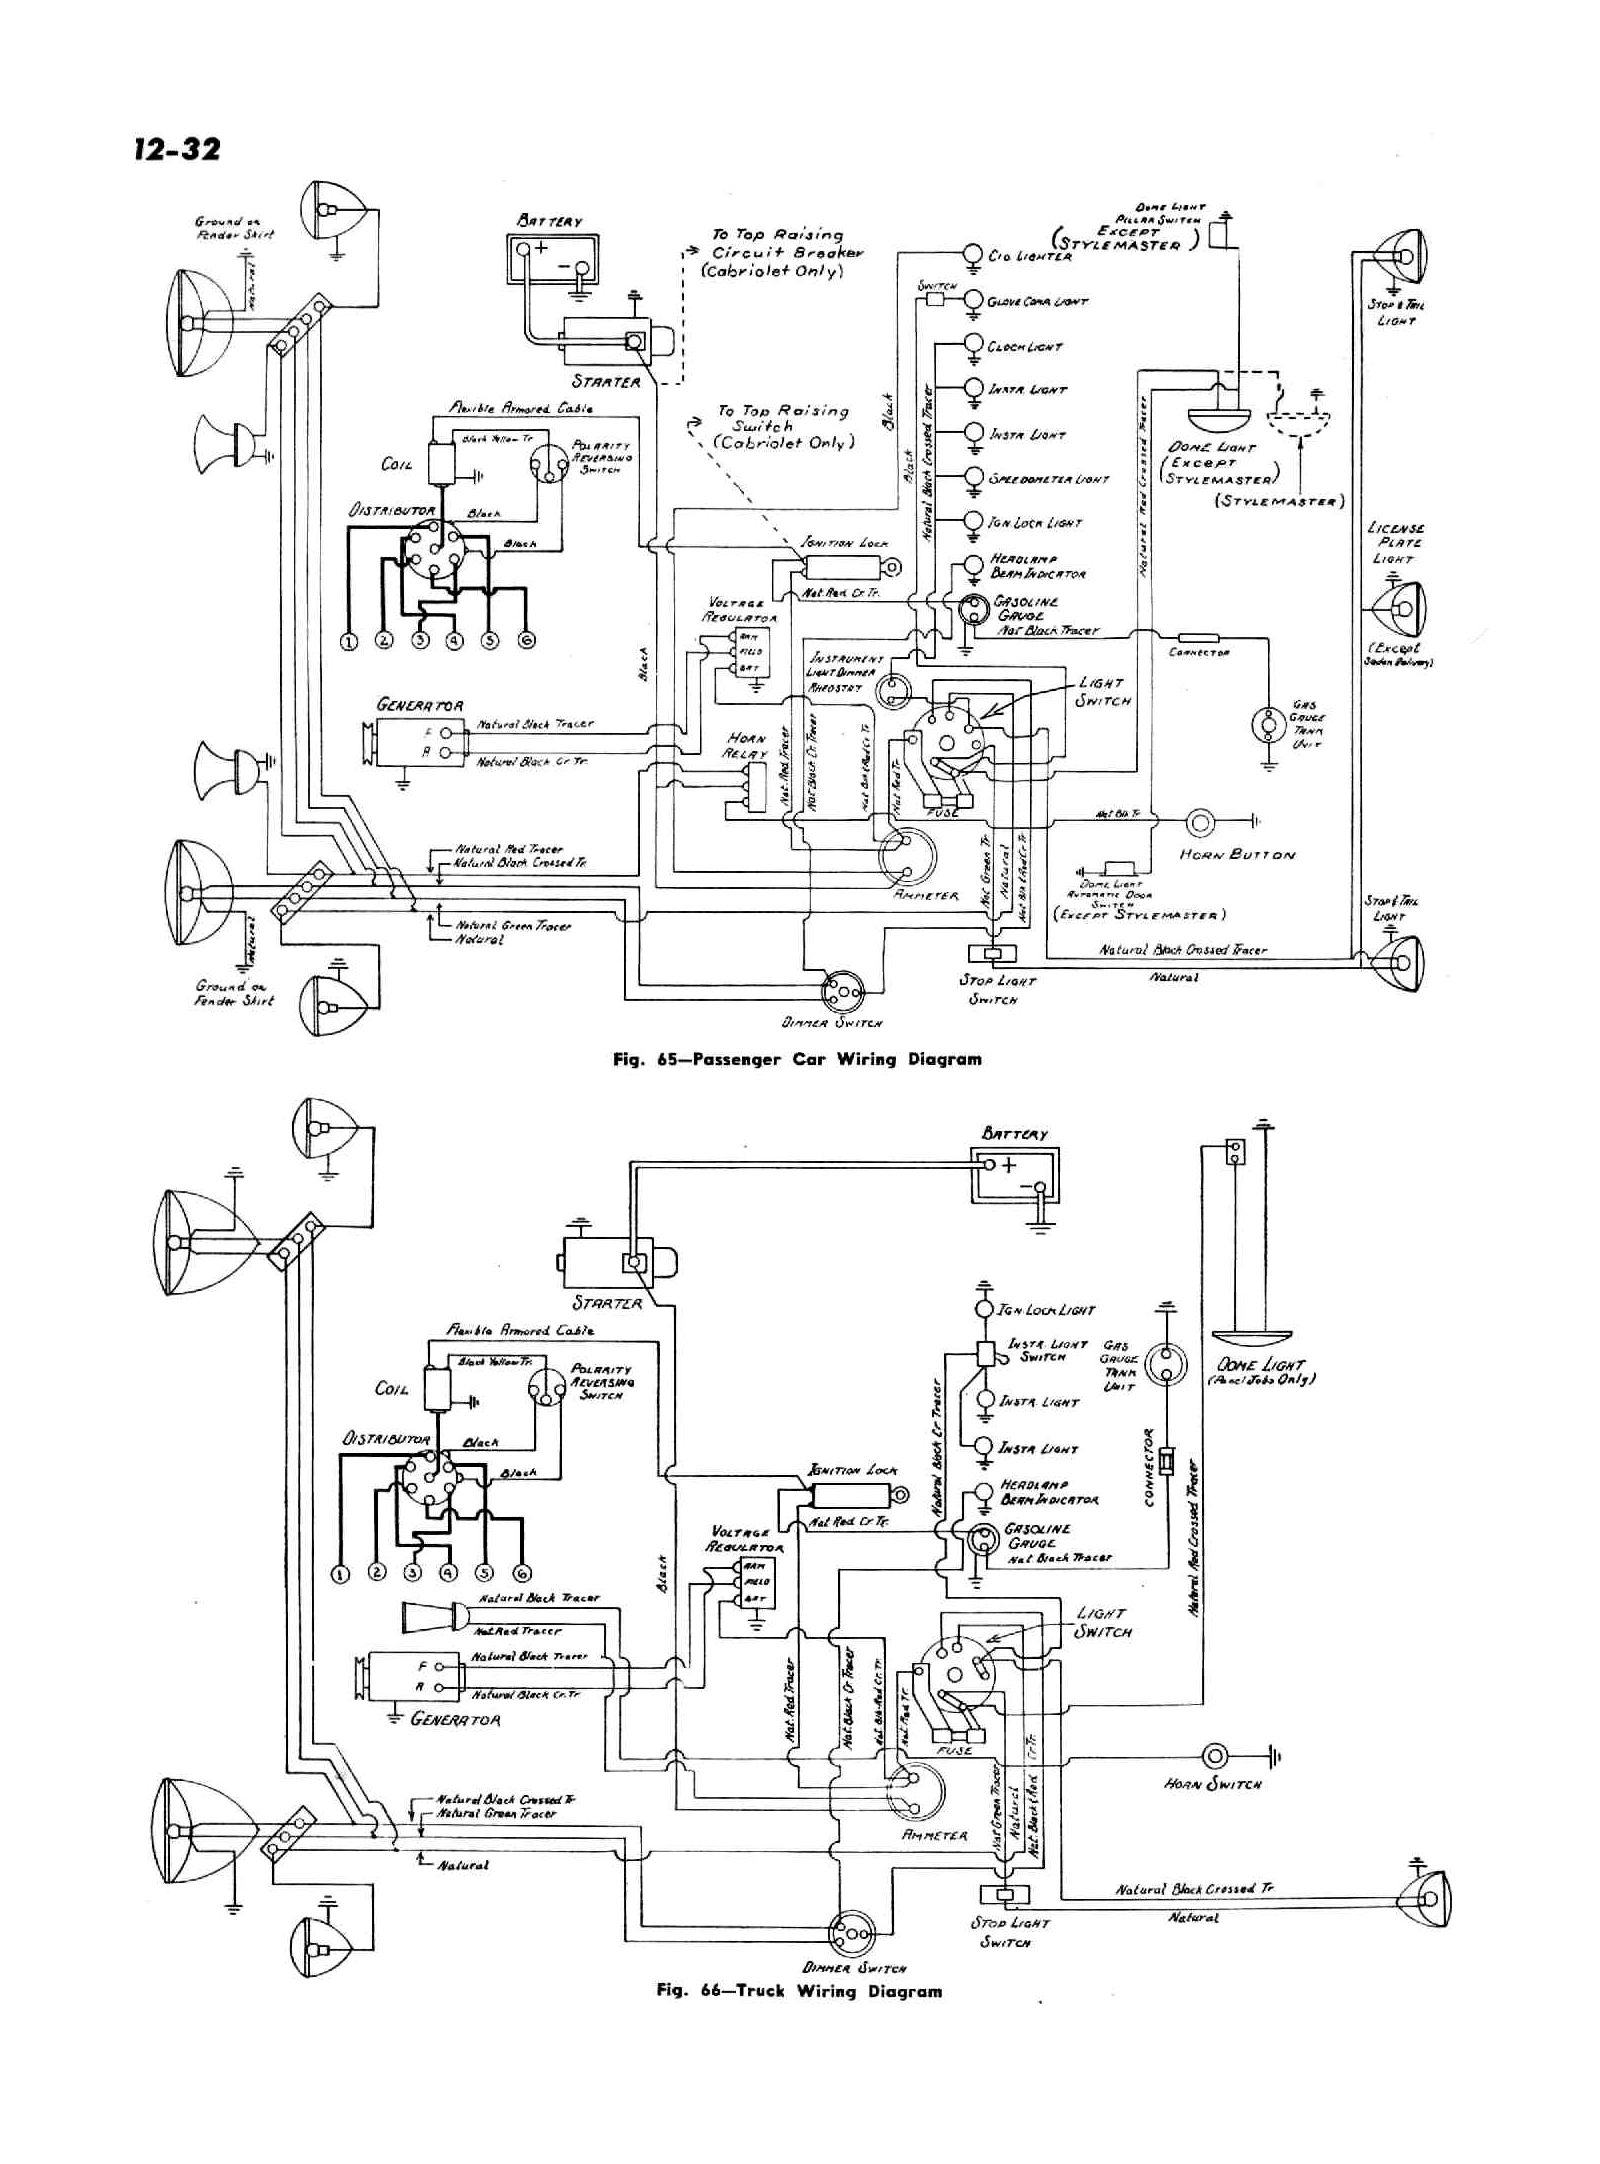 1066 international tractor wiring harness trusted wiring diagrams u2022 rh caribbeanblues co